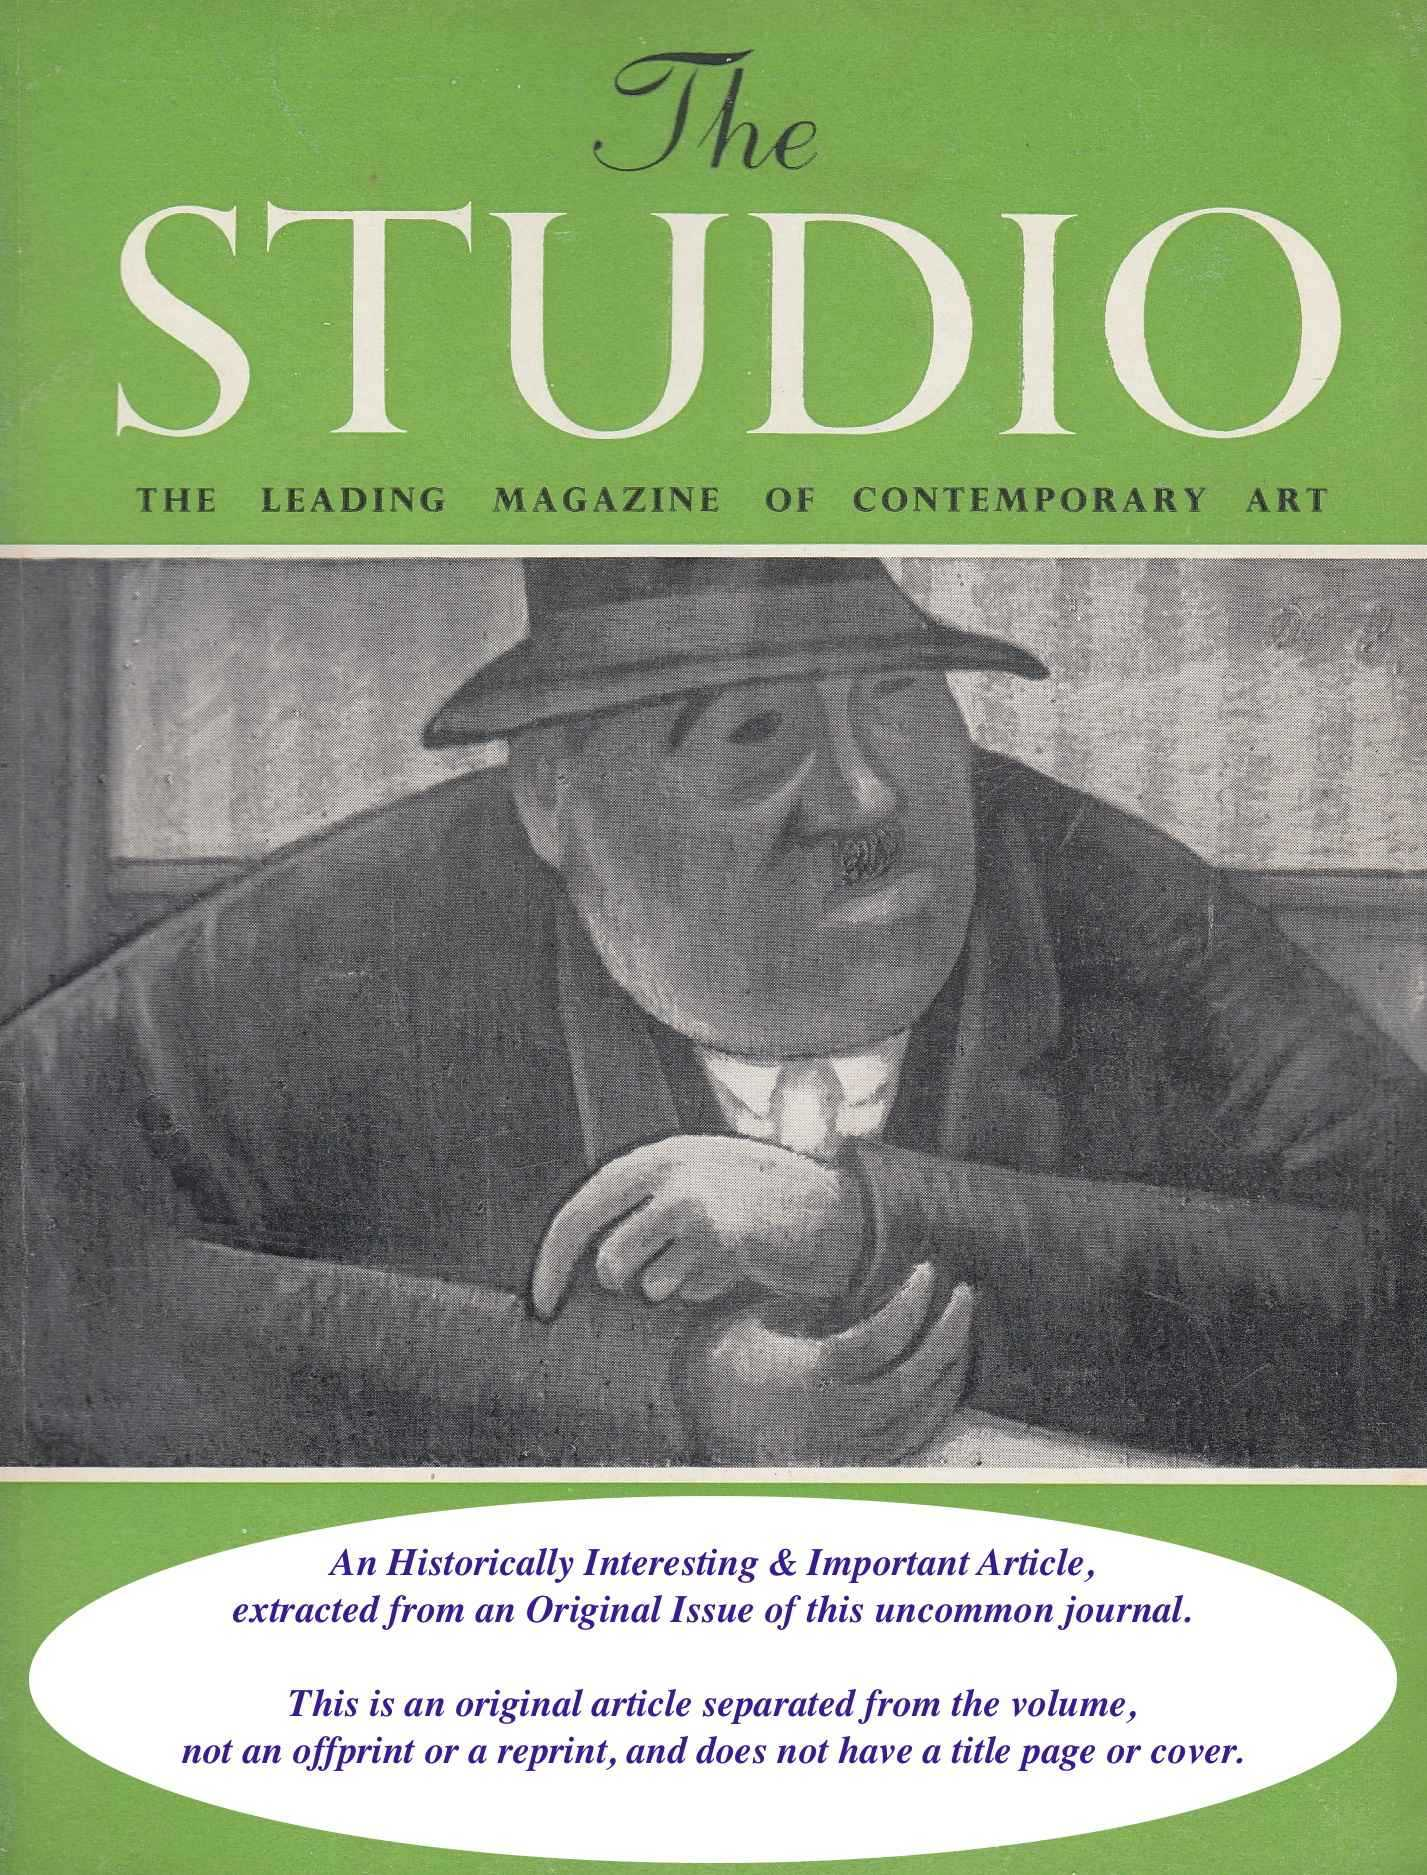 CHARLTON, GEORGE - The Slade School of Fine Art. An original article from the The Studio magazine, 1946.